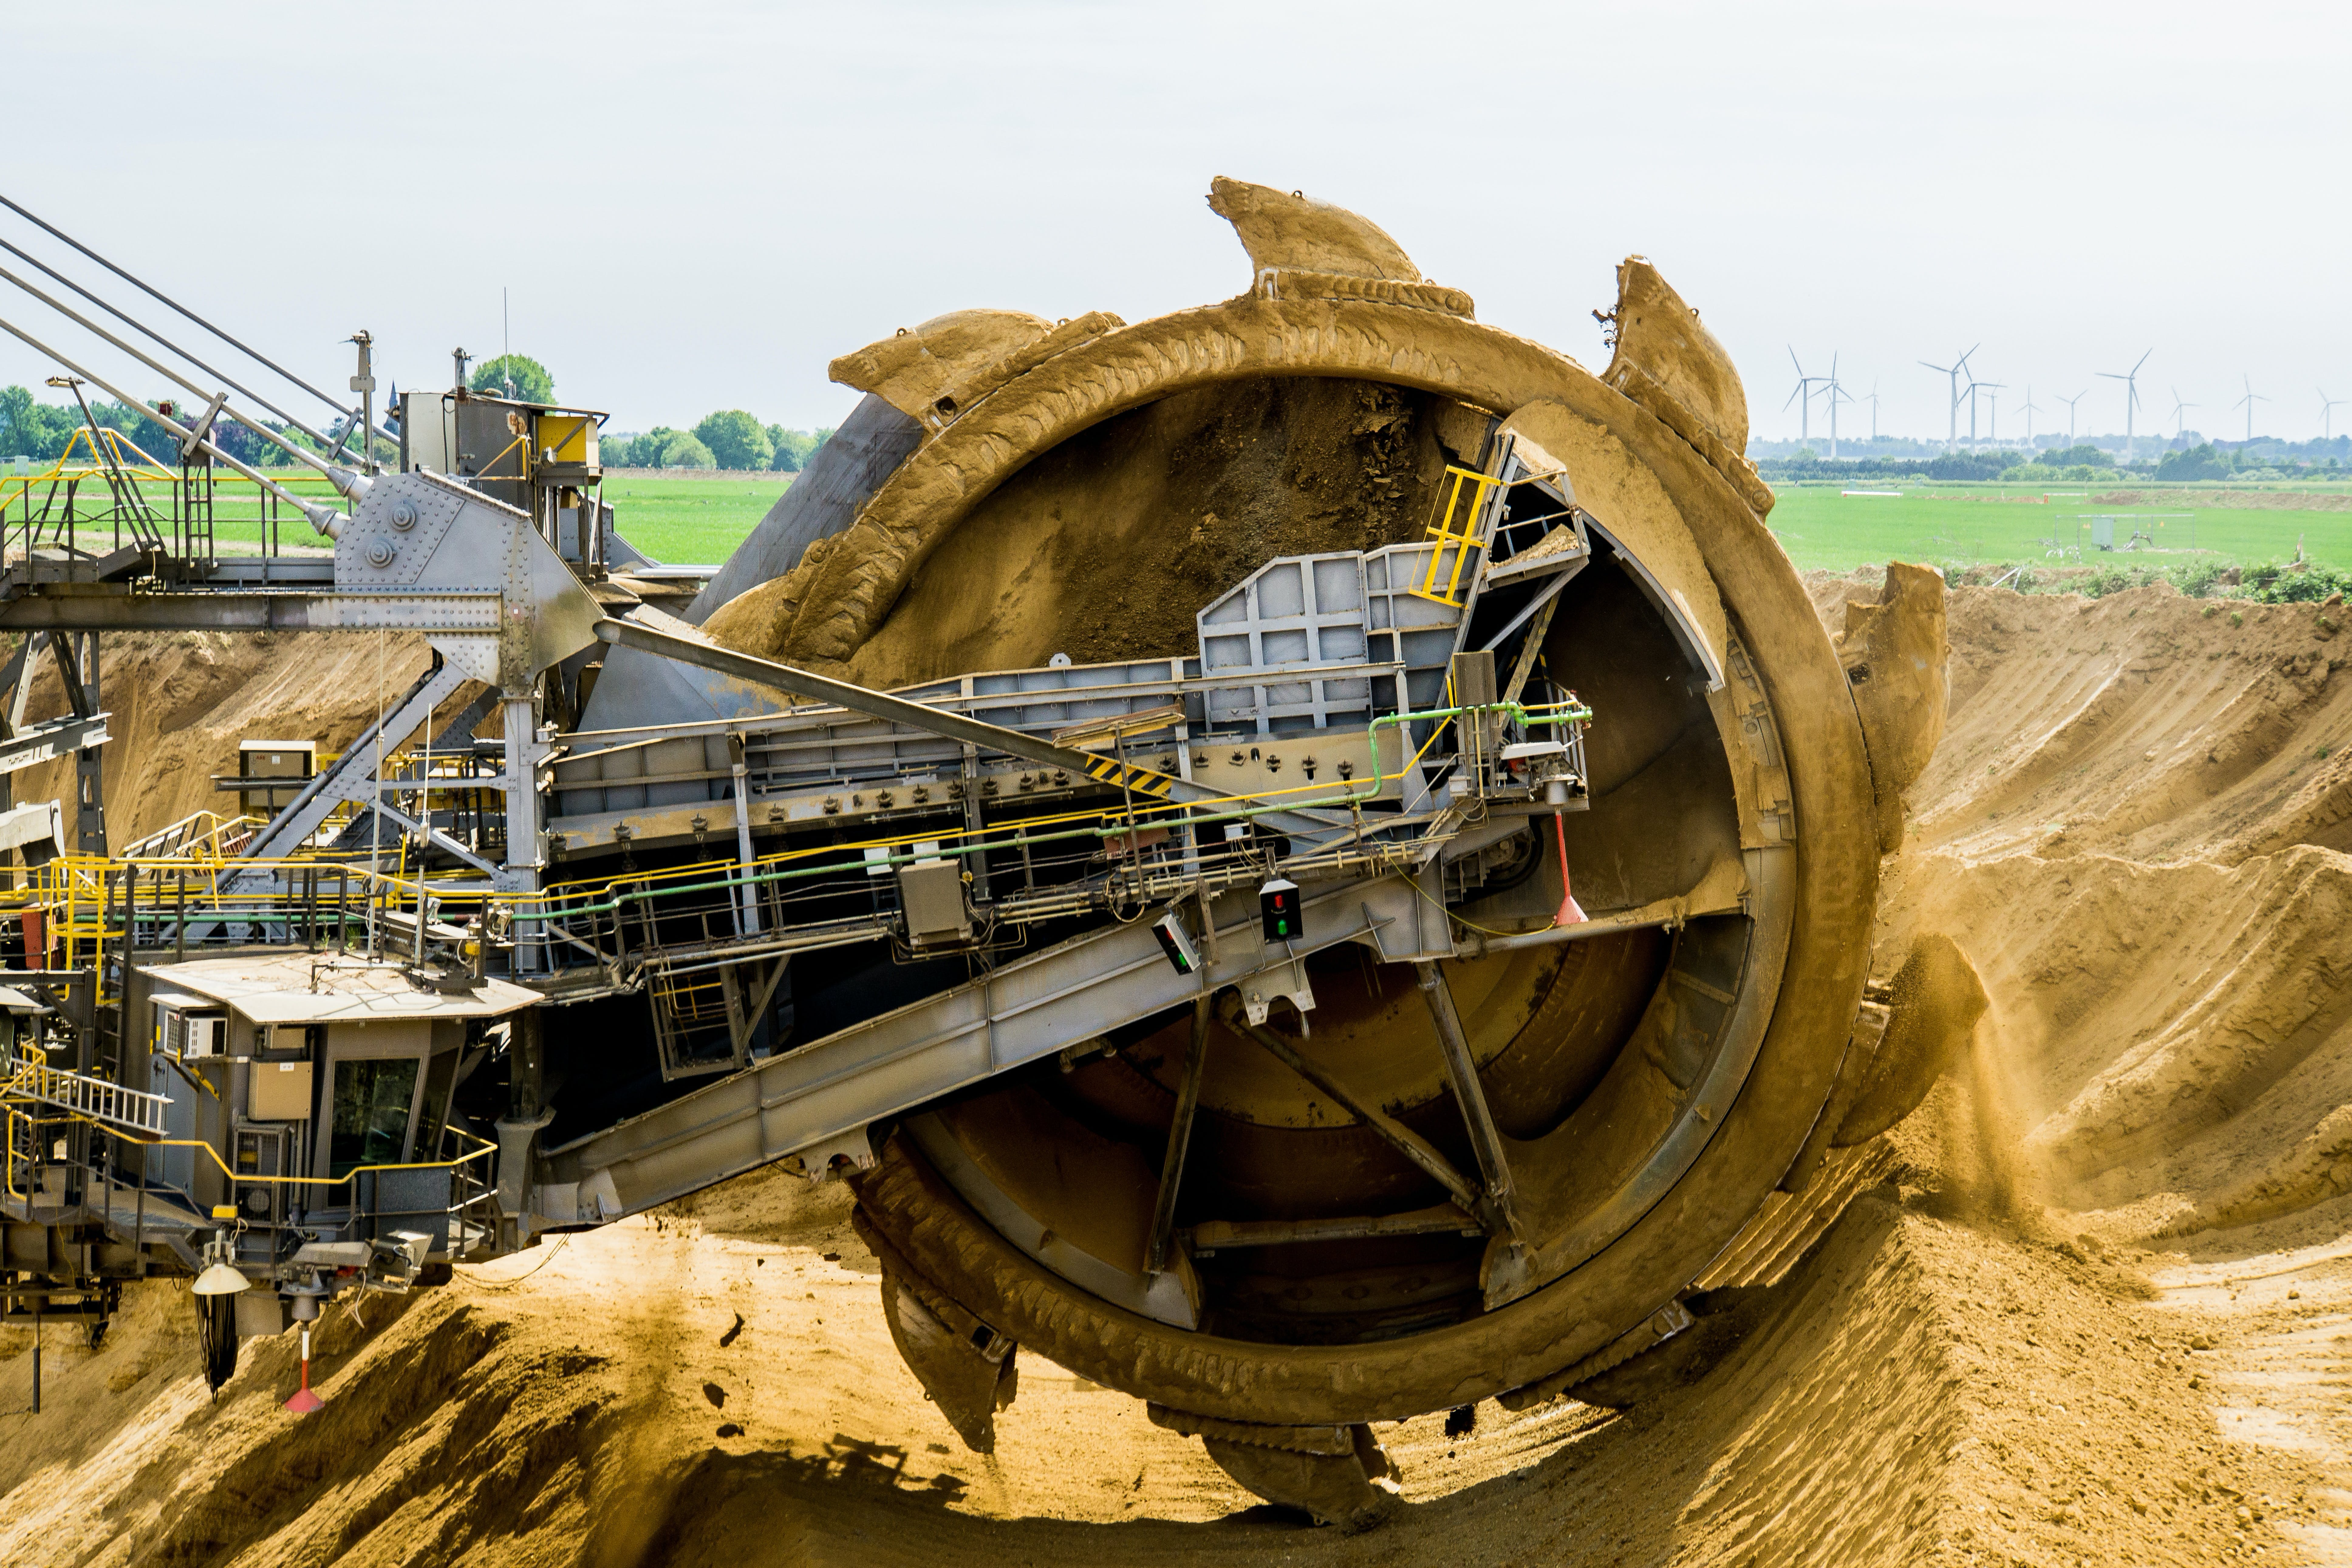 Round Brown and Grey Metal Heavy Equipment on Sand